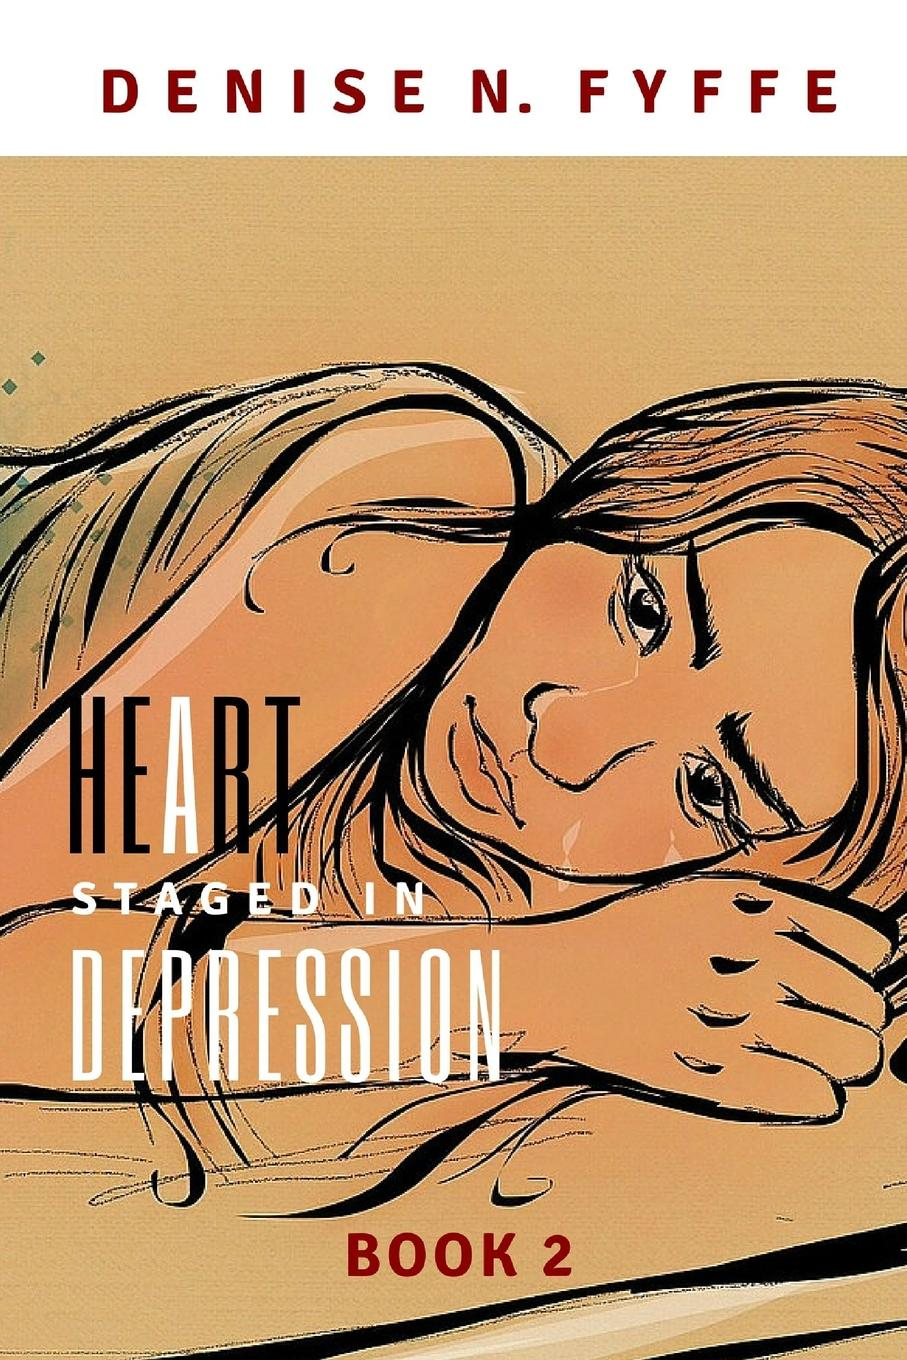 лучшая цена Denise N. Fyffe A Heart Staged in Depression